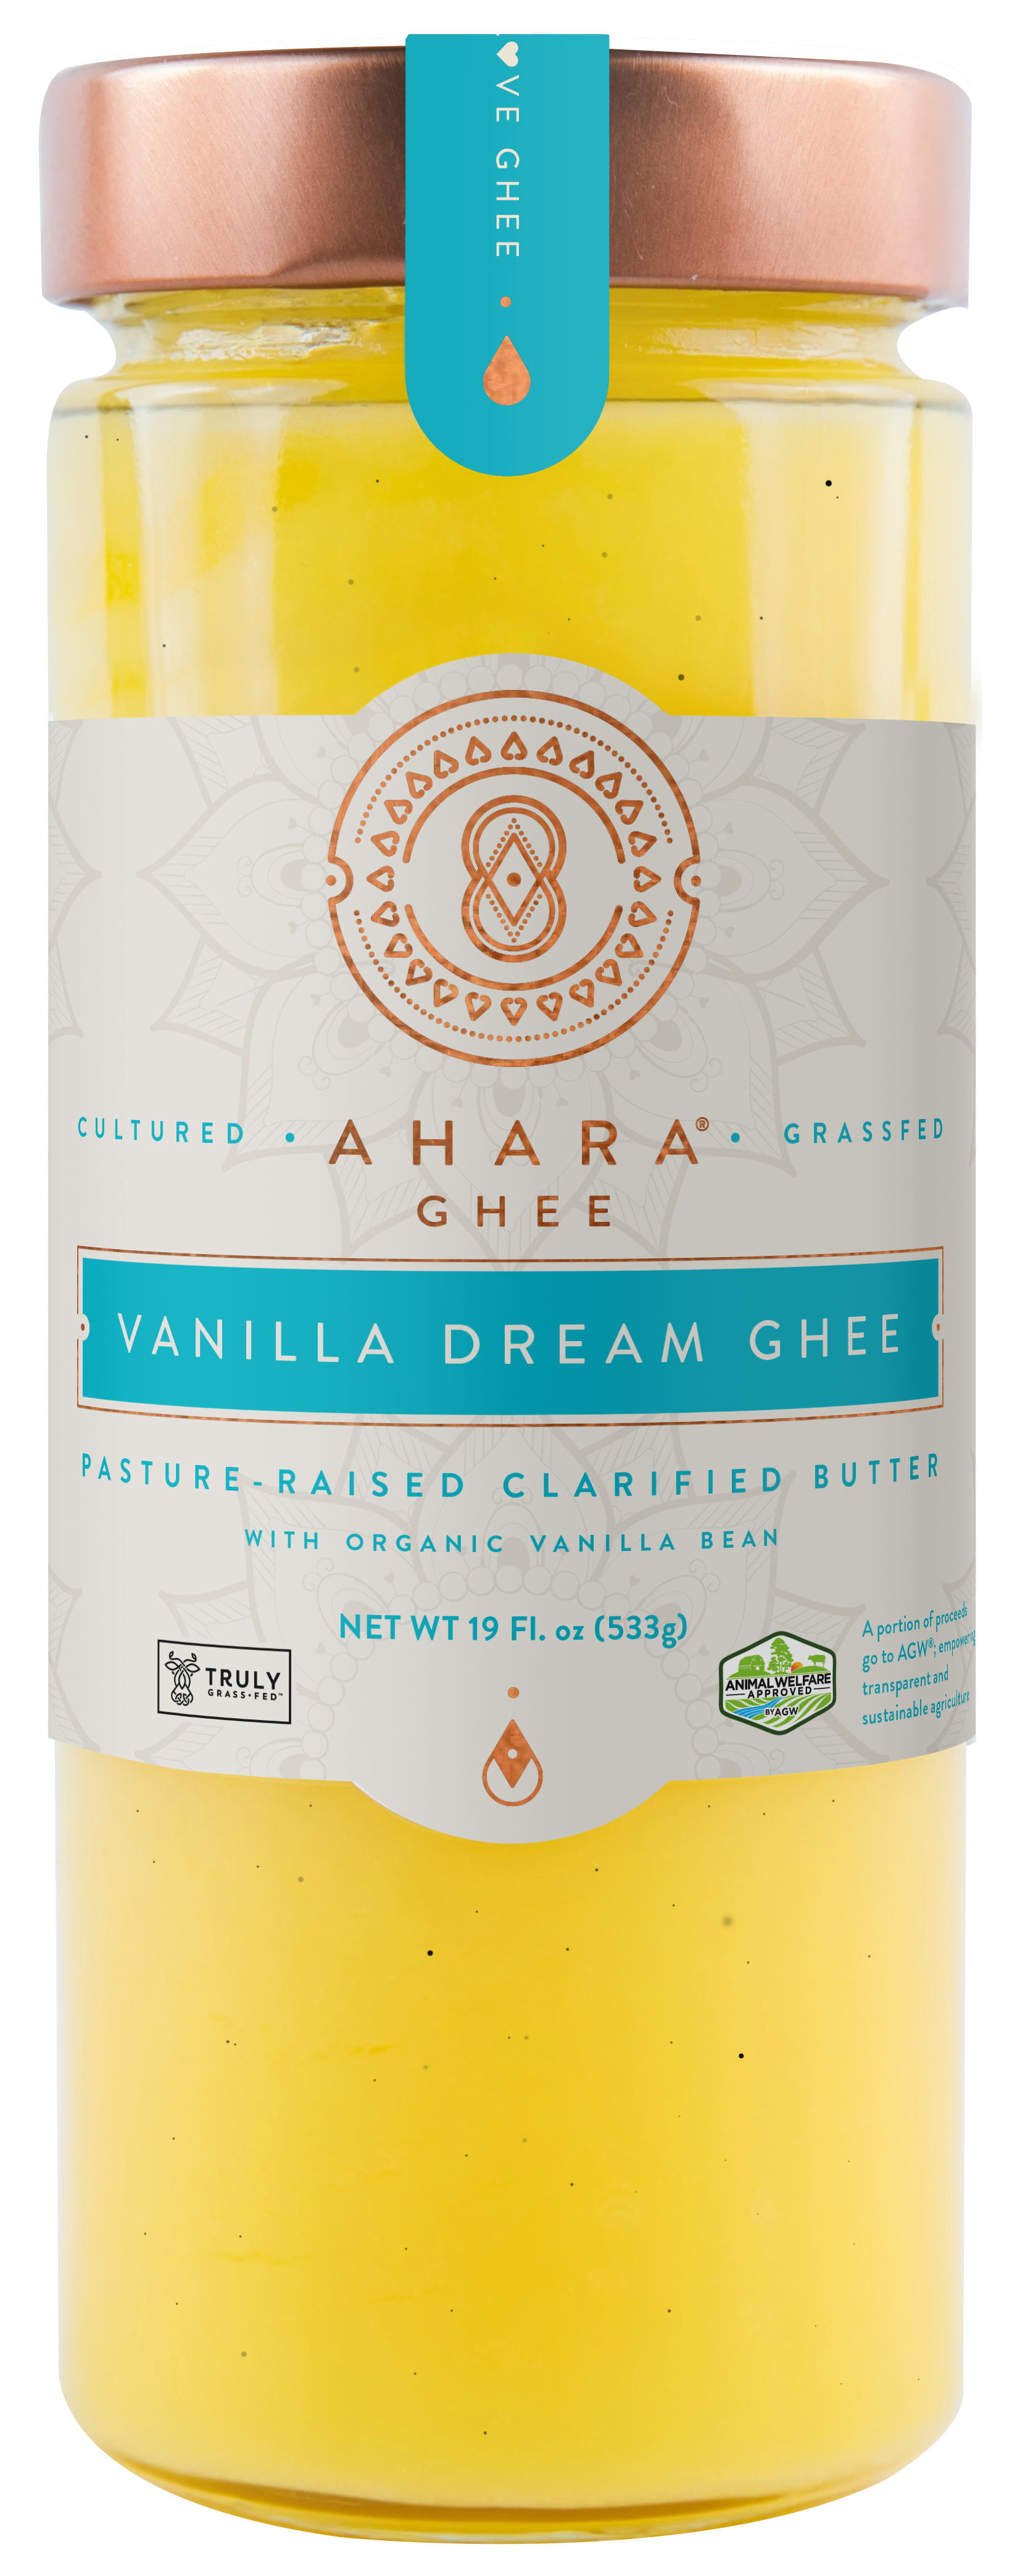 Vanilla Dream Ghee